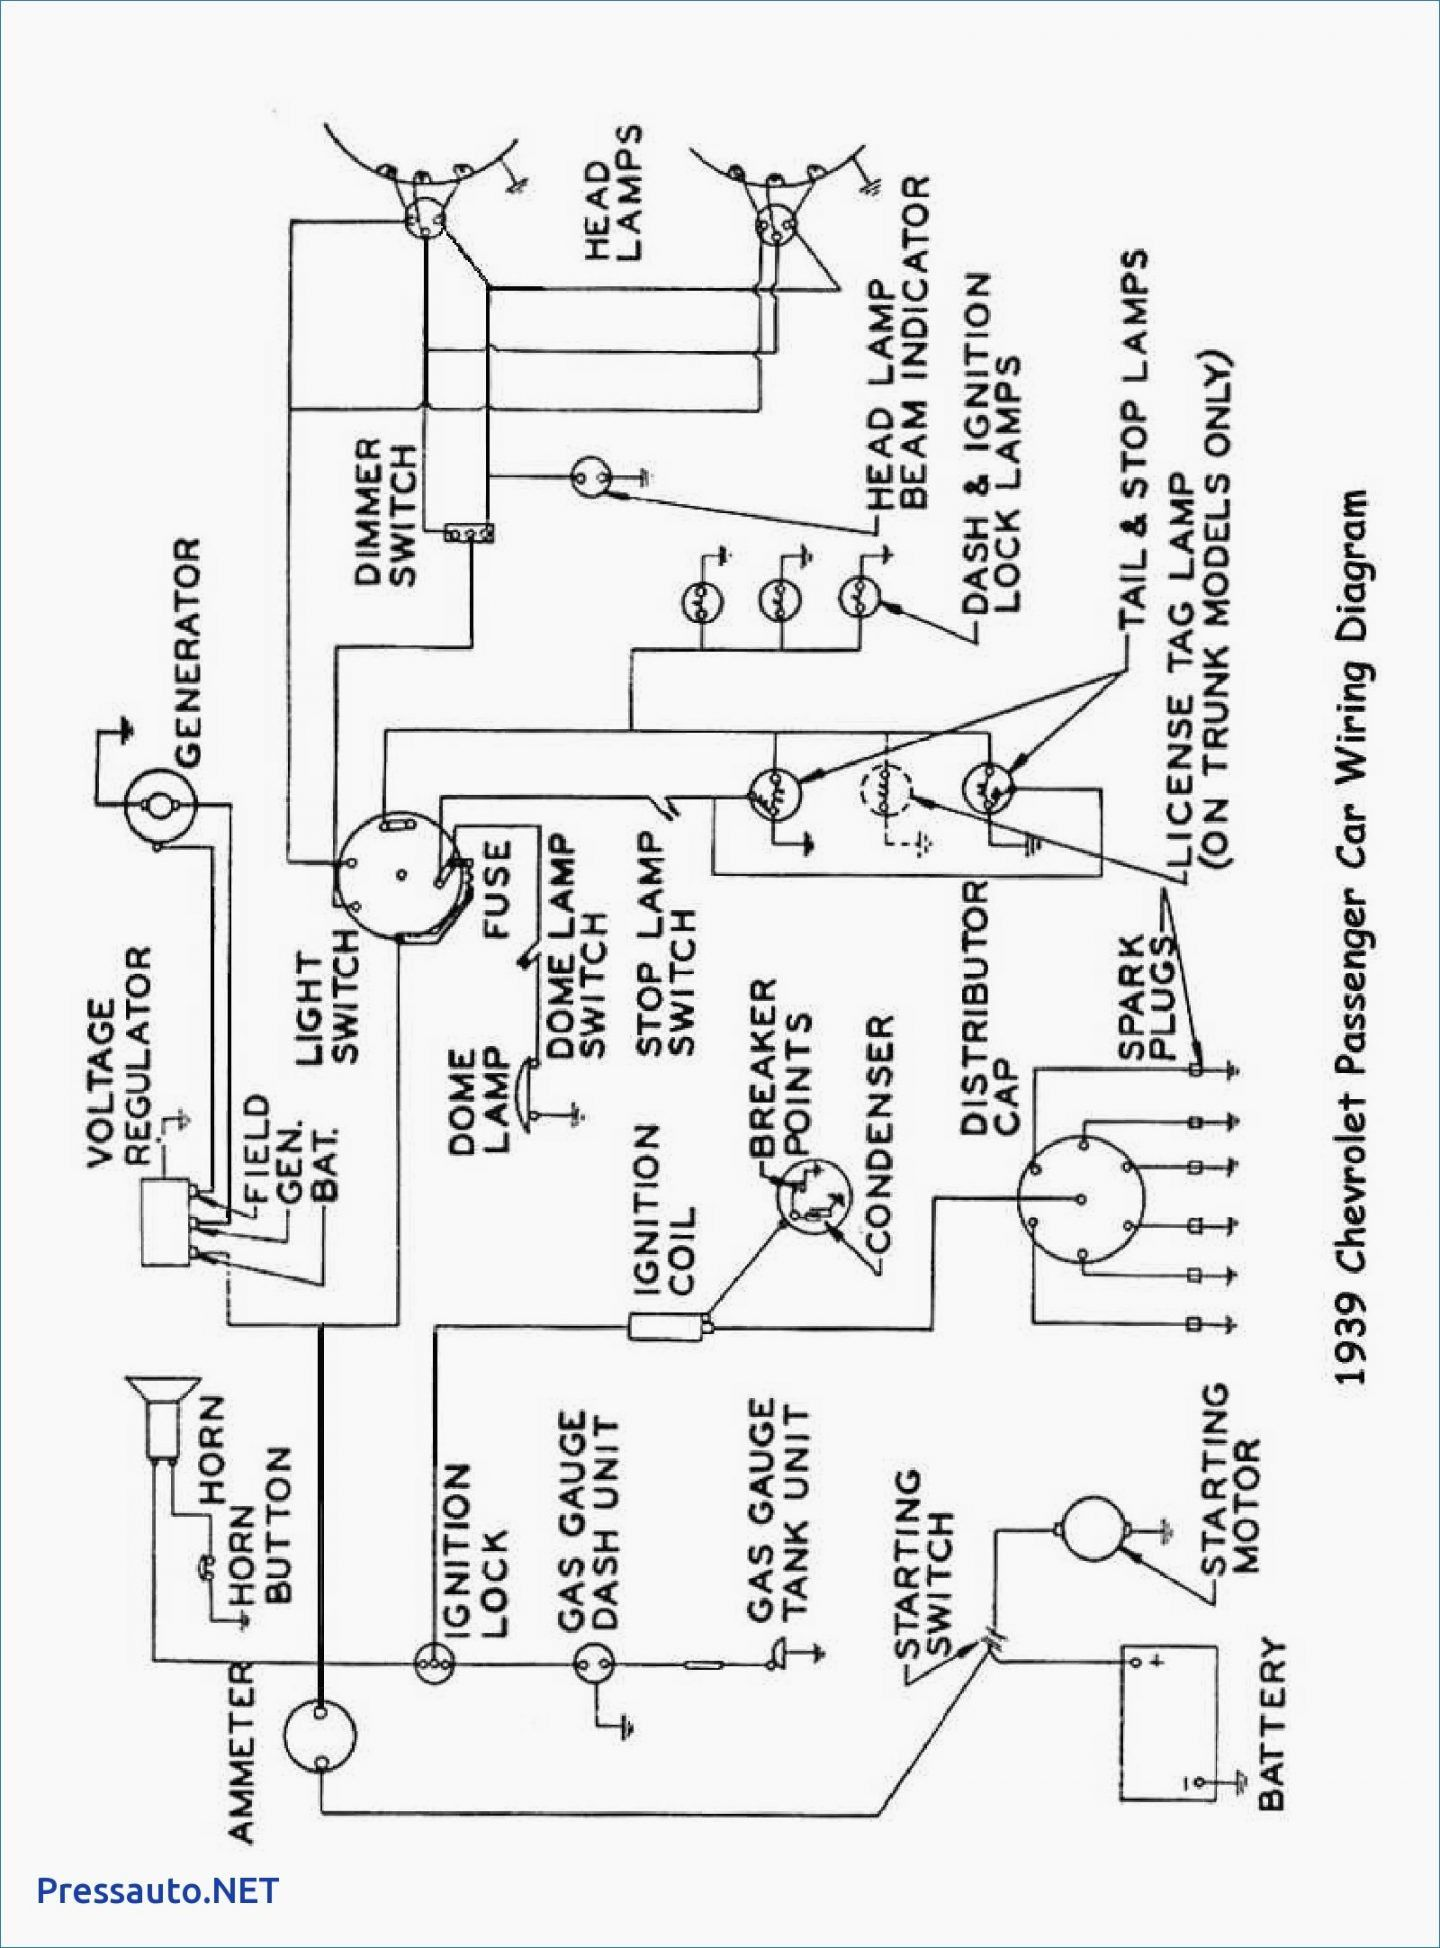 small resolution of wiring diagram welding machine inspirationa best of pdf circuitwiring diagram welding machine inspirationa best of pdf